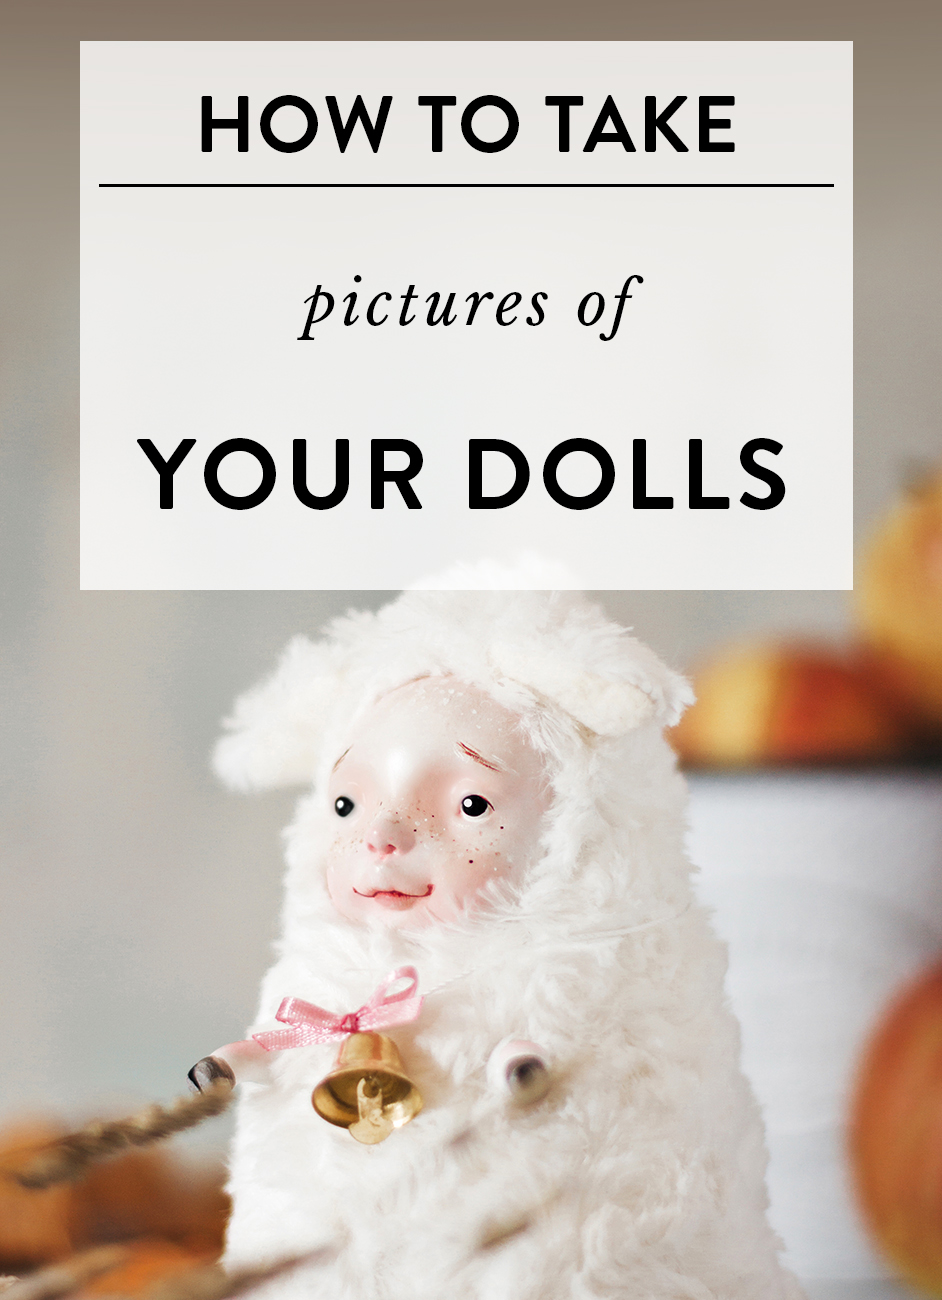 How to take pictures of your dolls? By Adele Po